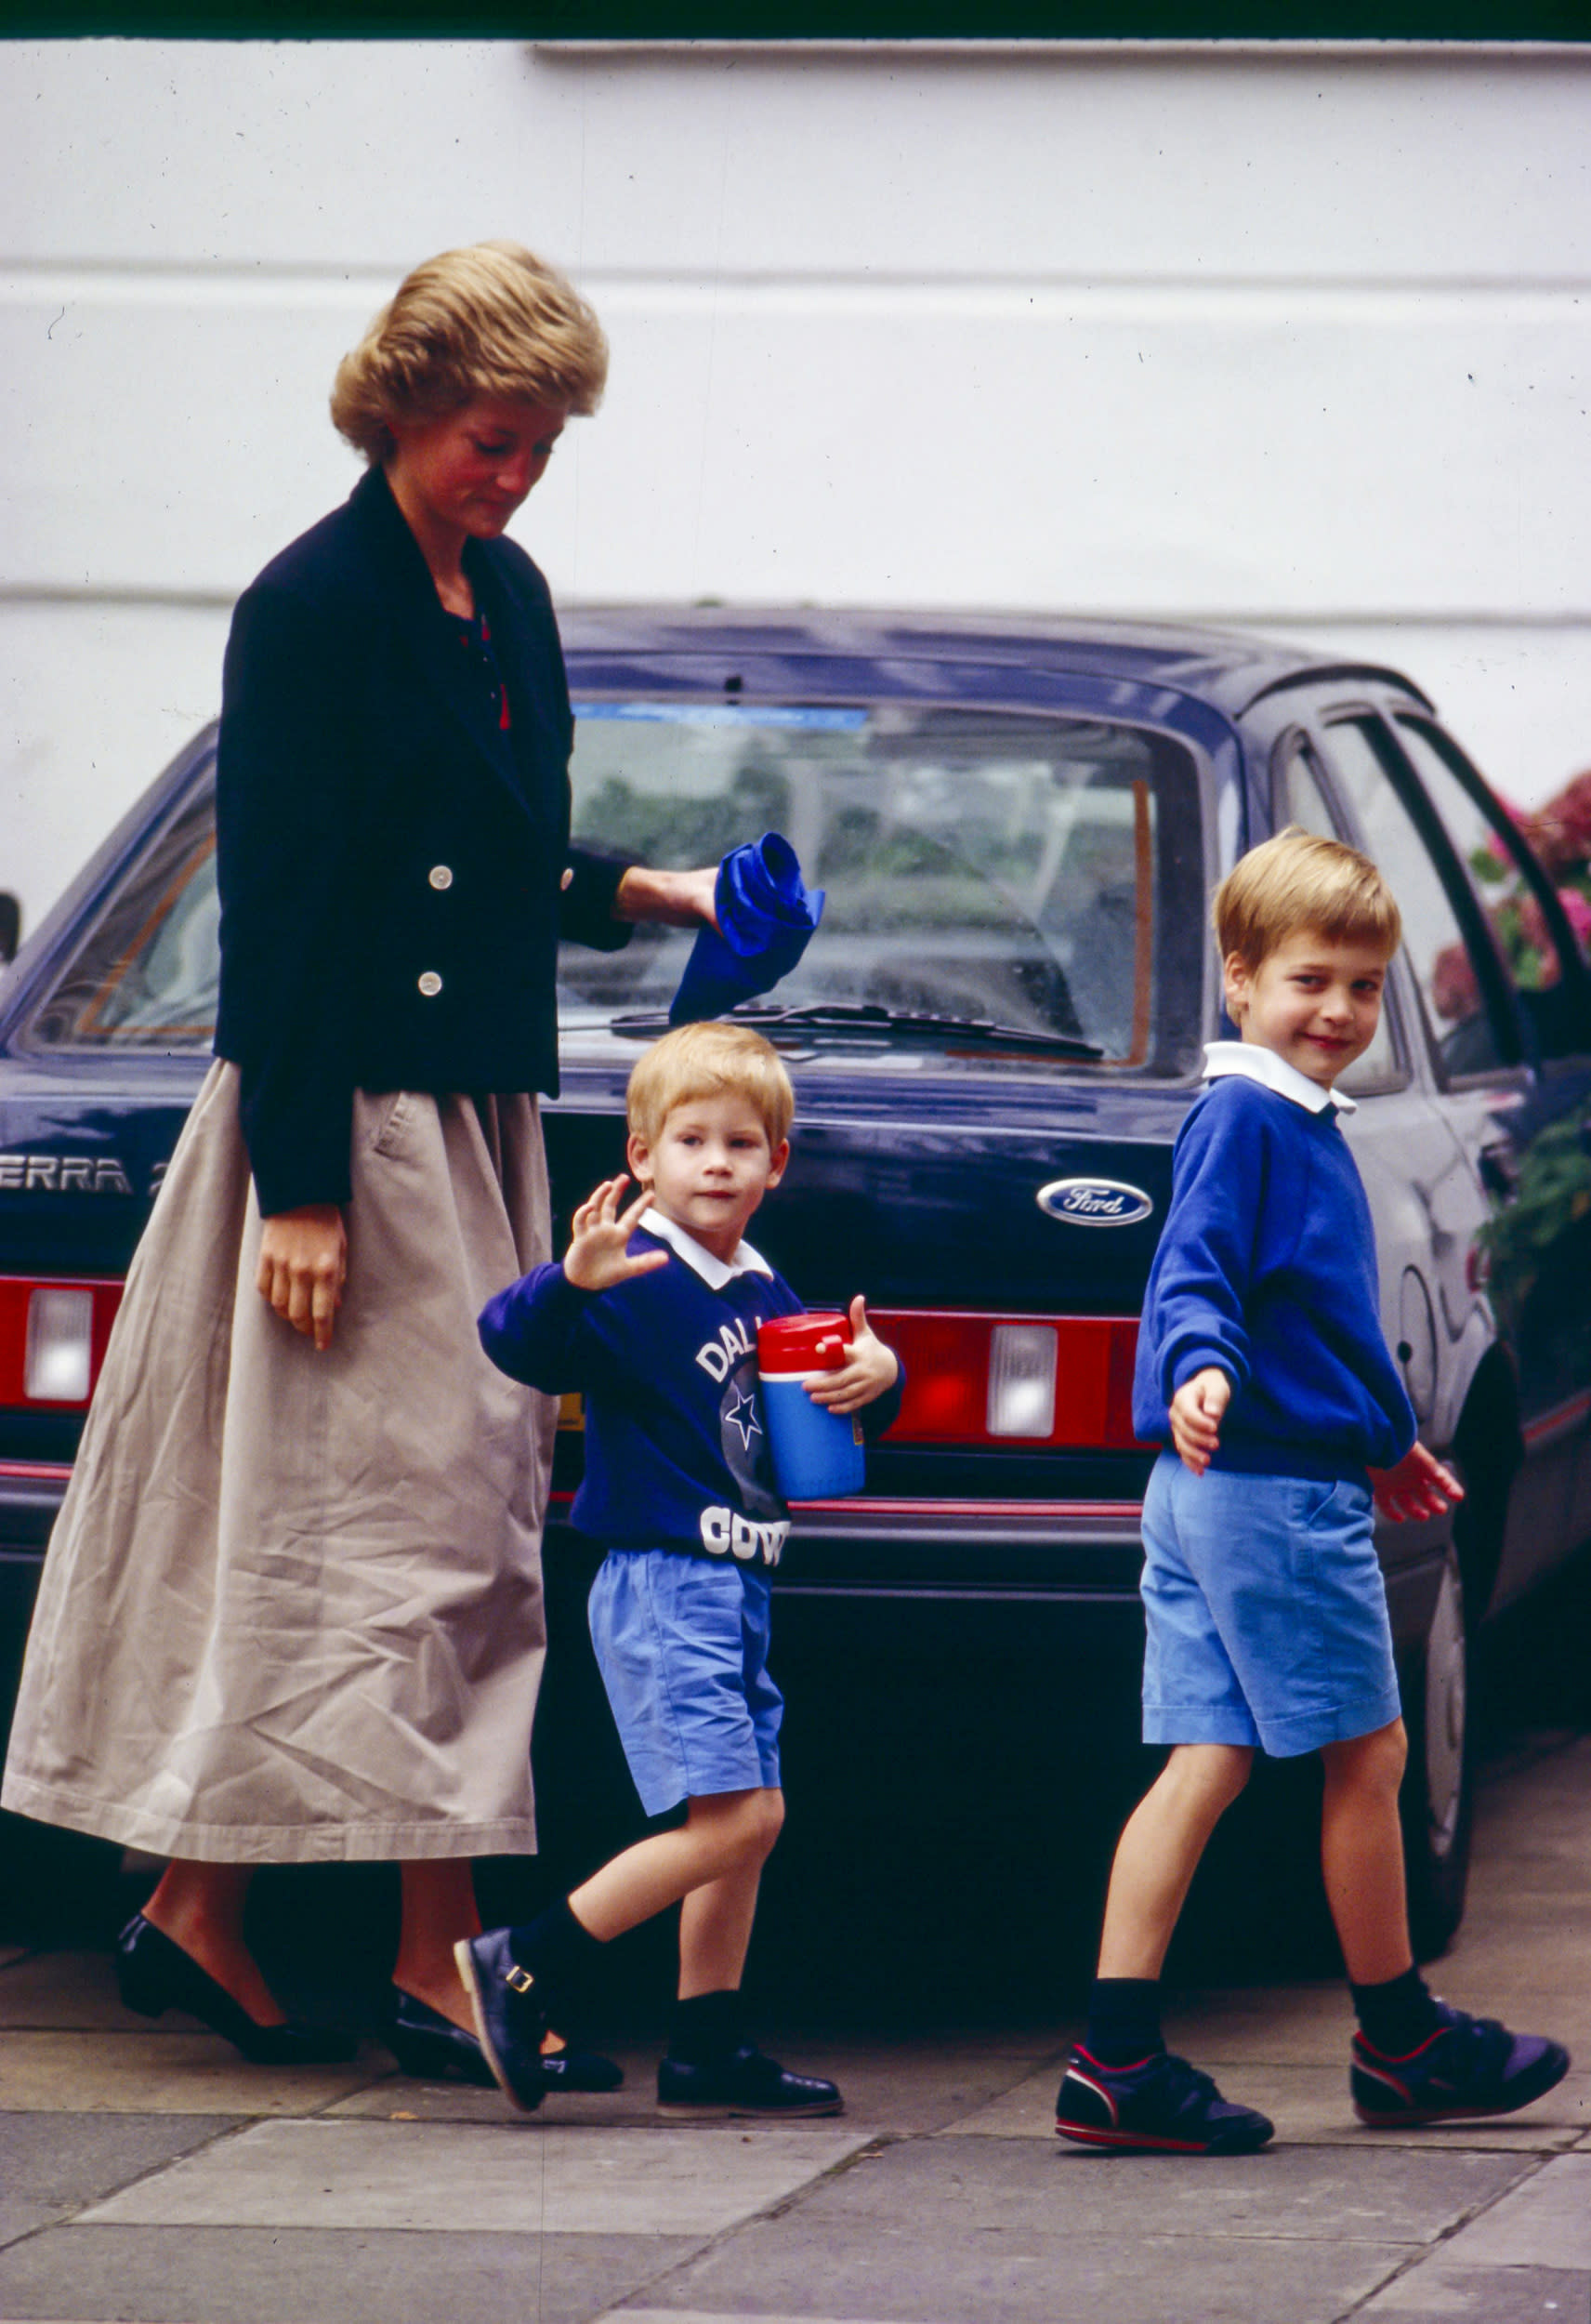 LONDON, UNITED KINGDOM  - SEPTEMBER 13:  Diana, The Princess of Wales  with  Prince Harry as he returns to his Nursery School in London's Notting Hill, after the Summer Break, accompanied by Prince William, who returns to his own School later this week.  on September 13, 1988  in London, United Kingdom. (Photo by Julian Parker/UK Press via Getty Images)